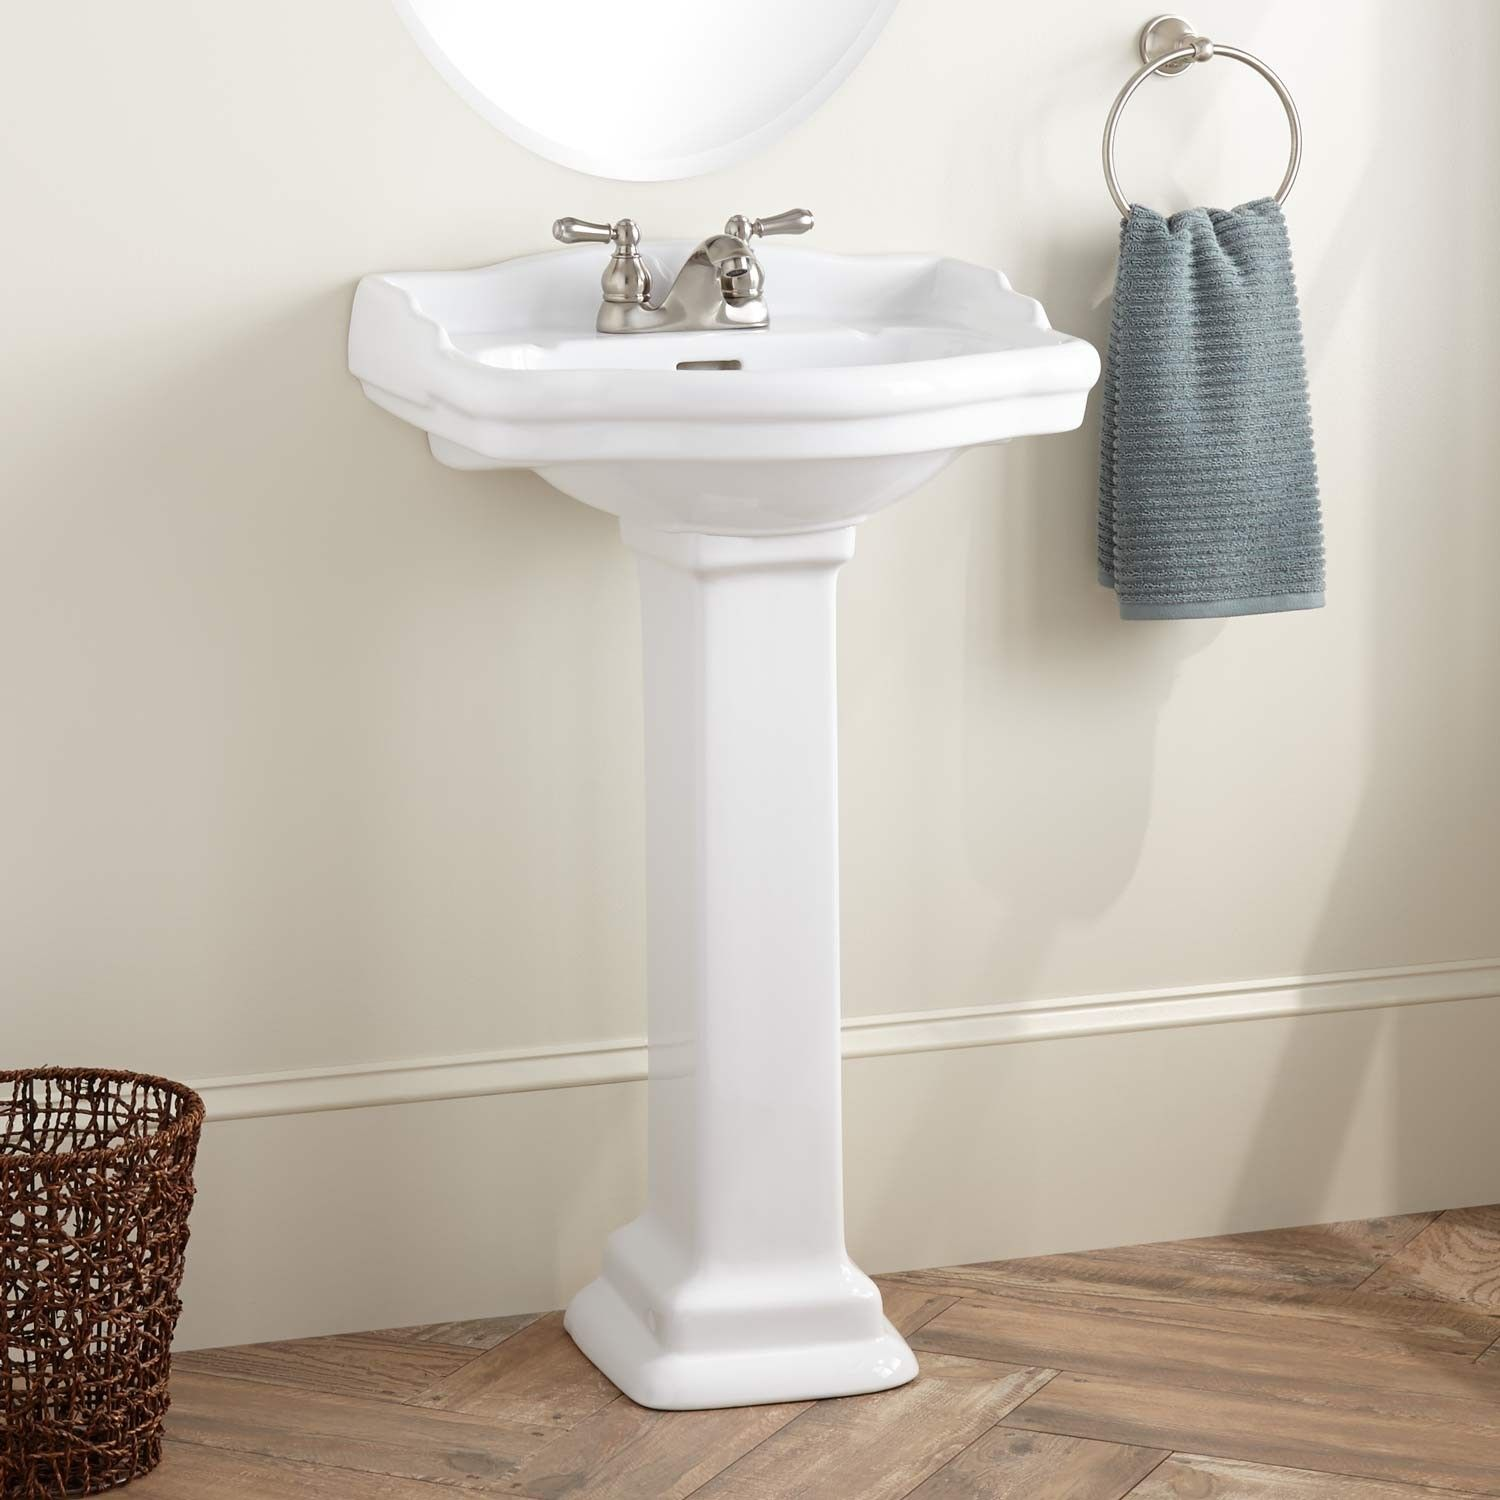 Stanford Porcelain Mini Pedestal Sink